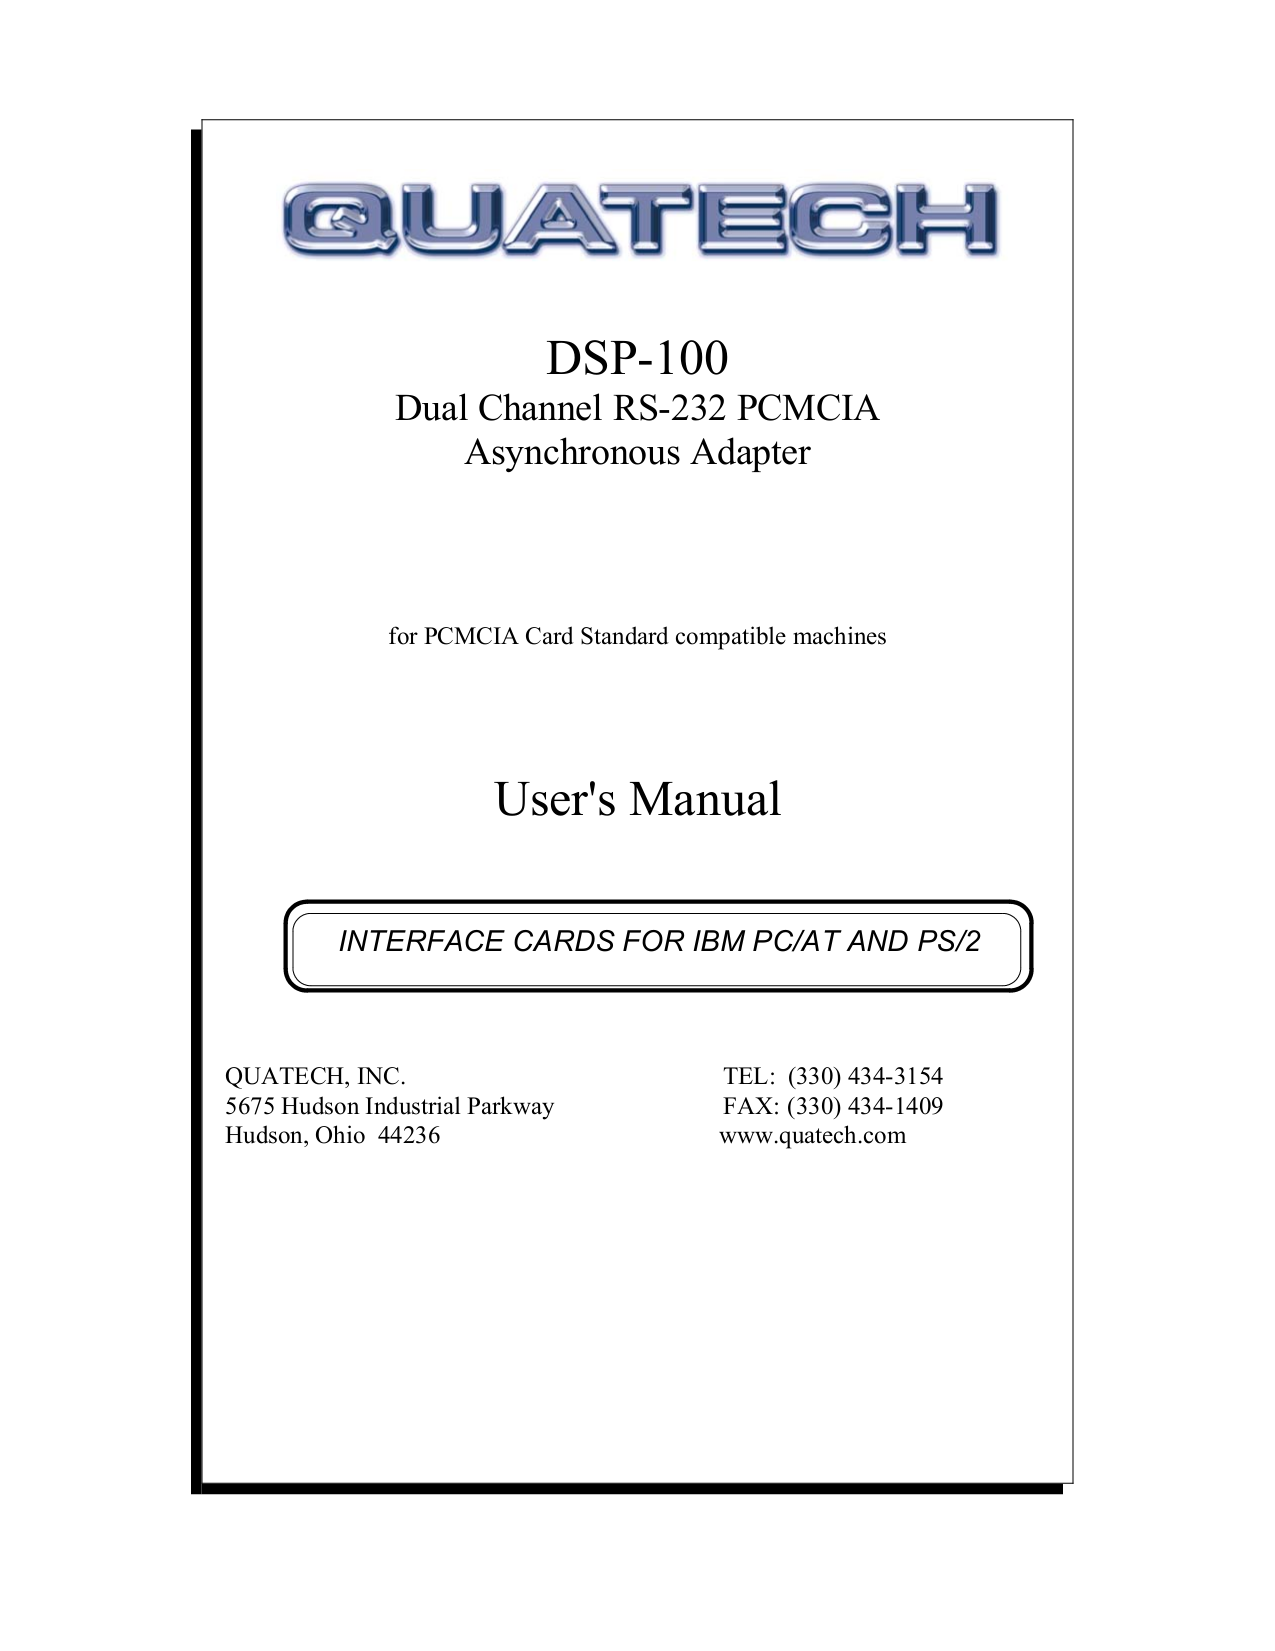 pdf for Quatech Other DSP-100 PCMCIA Cards manual